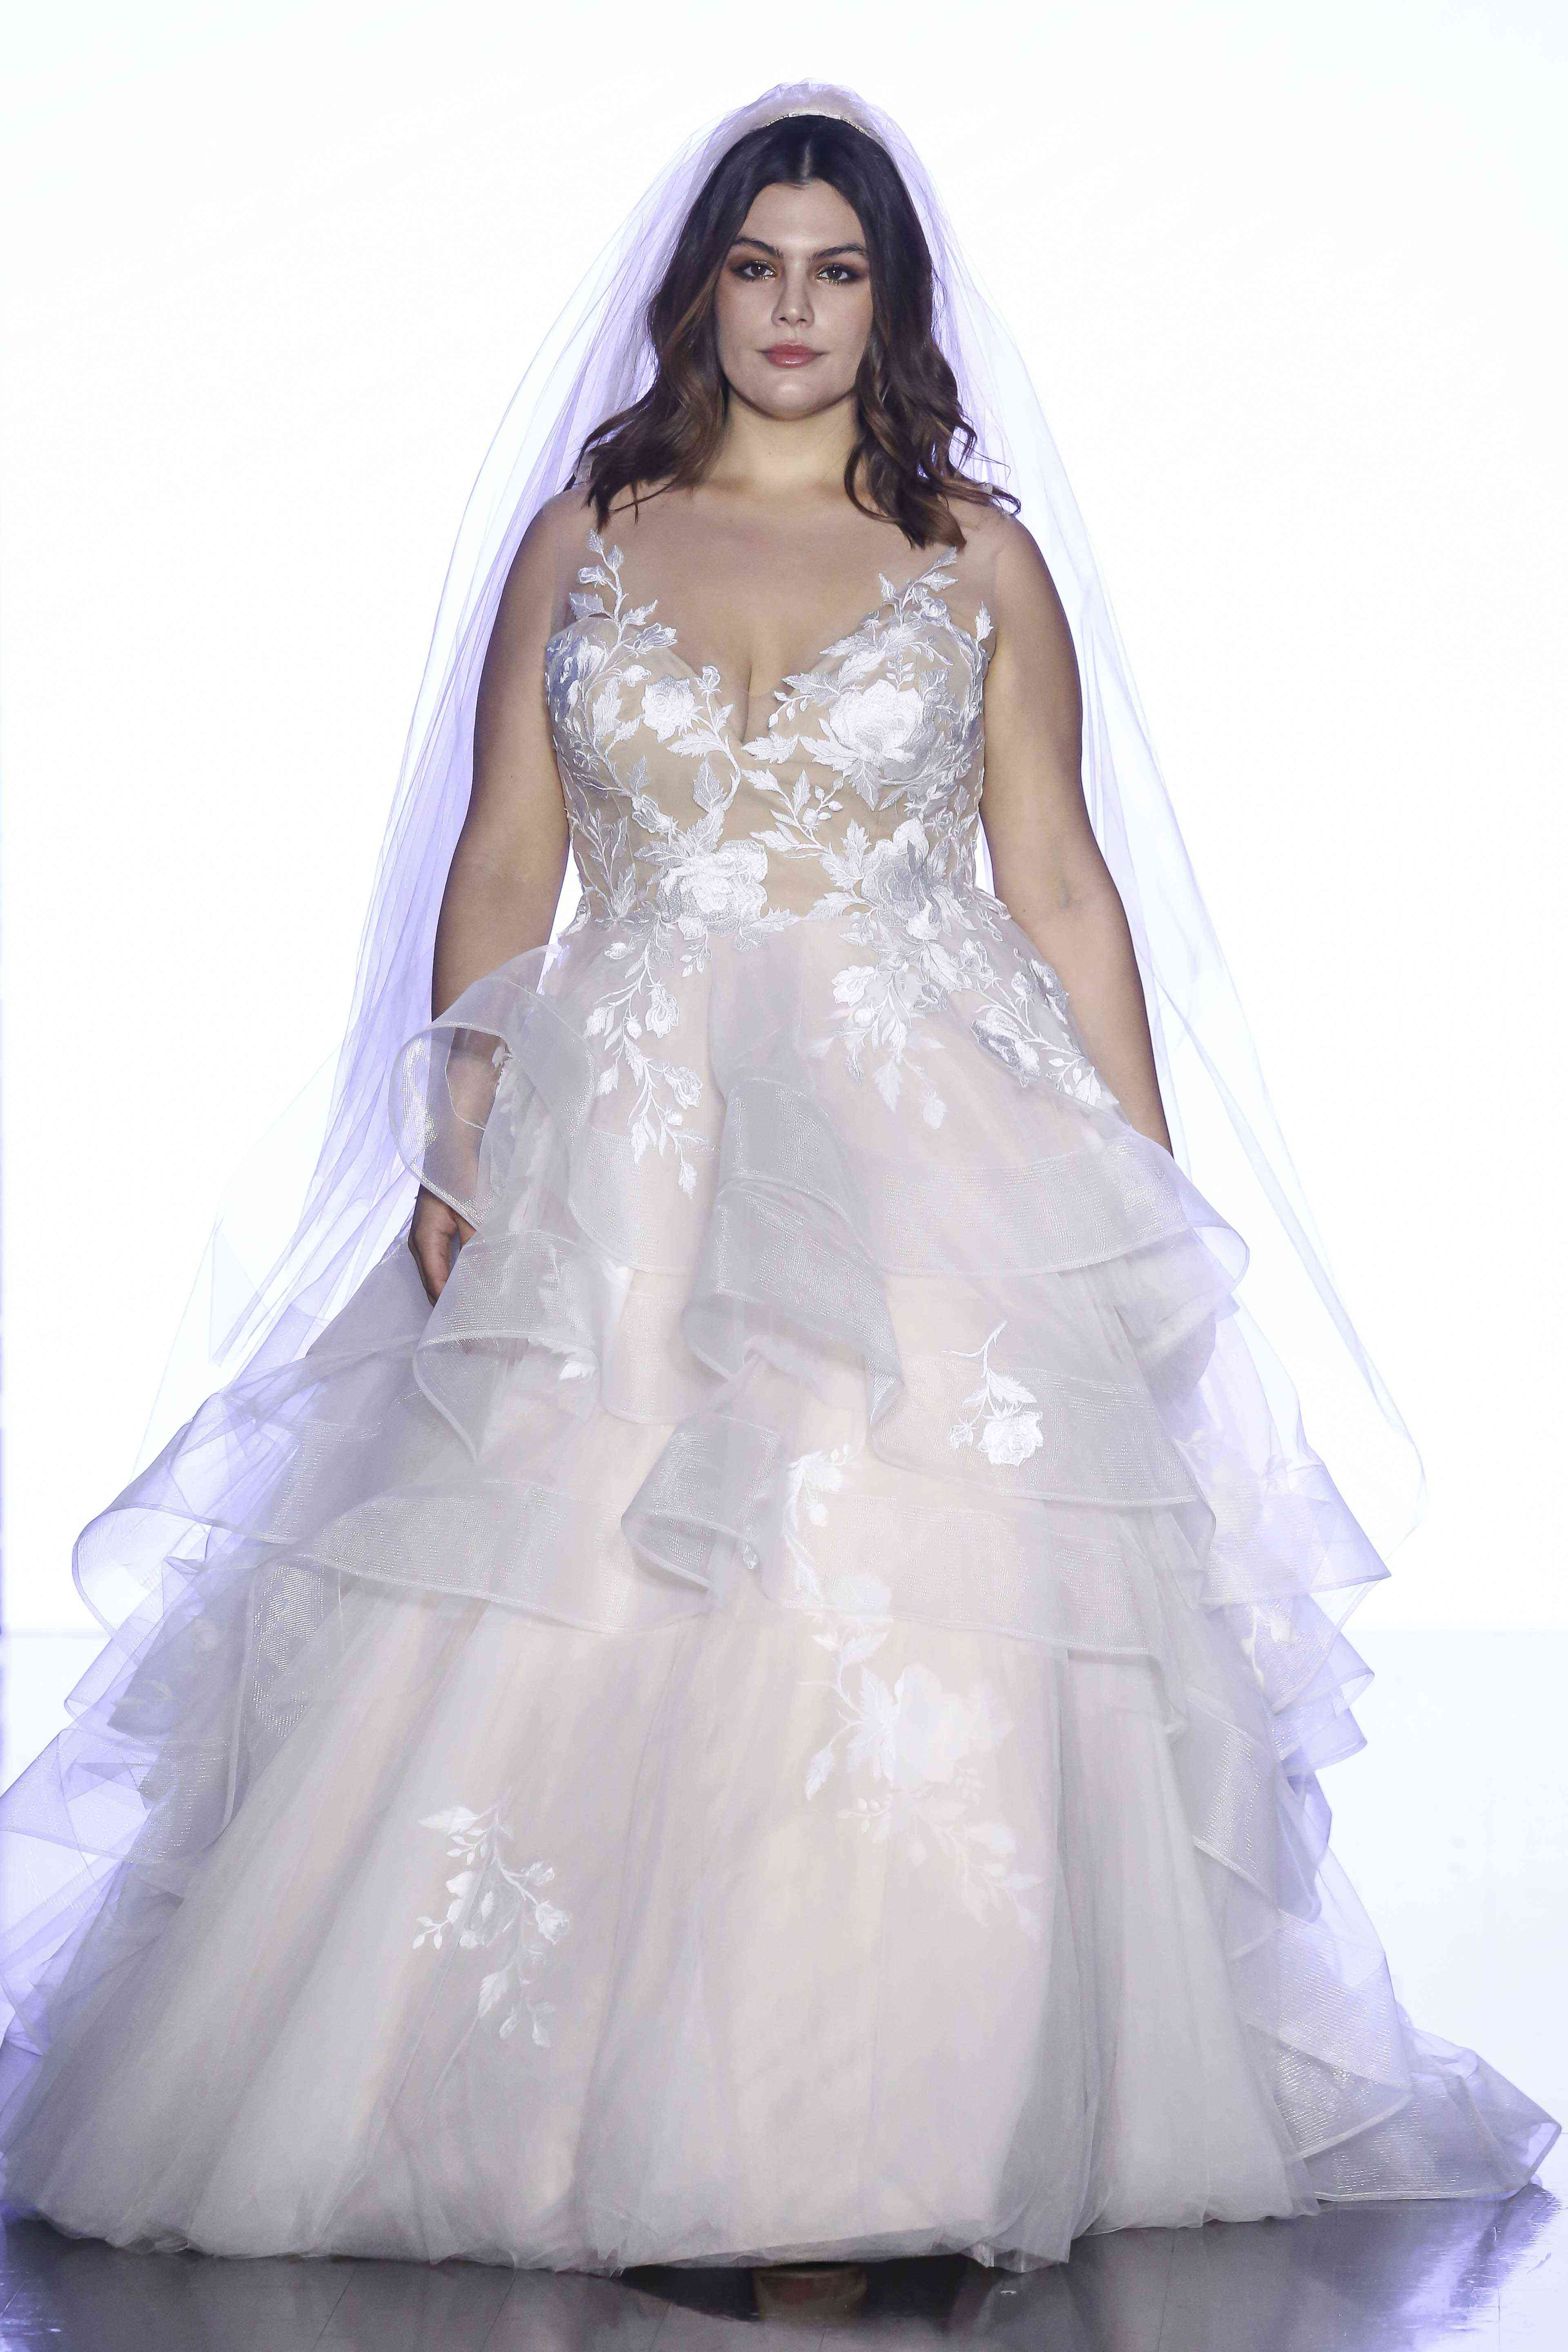 Model in ballgown with floral embroidered illusion V-neck bodice and a layered embroidered tulle skirt